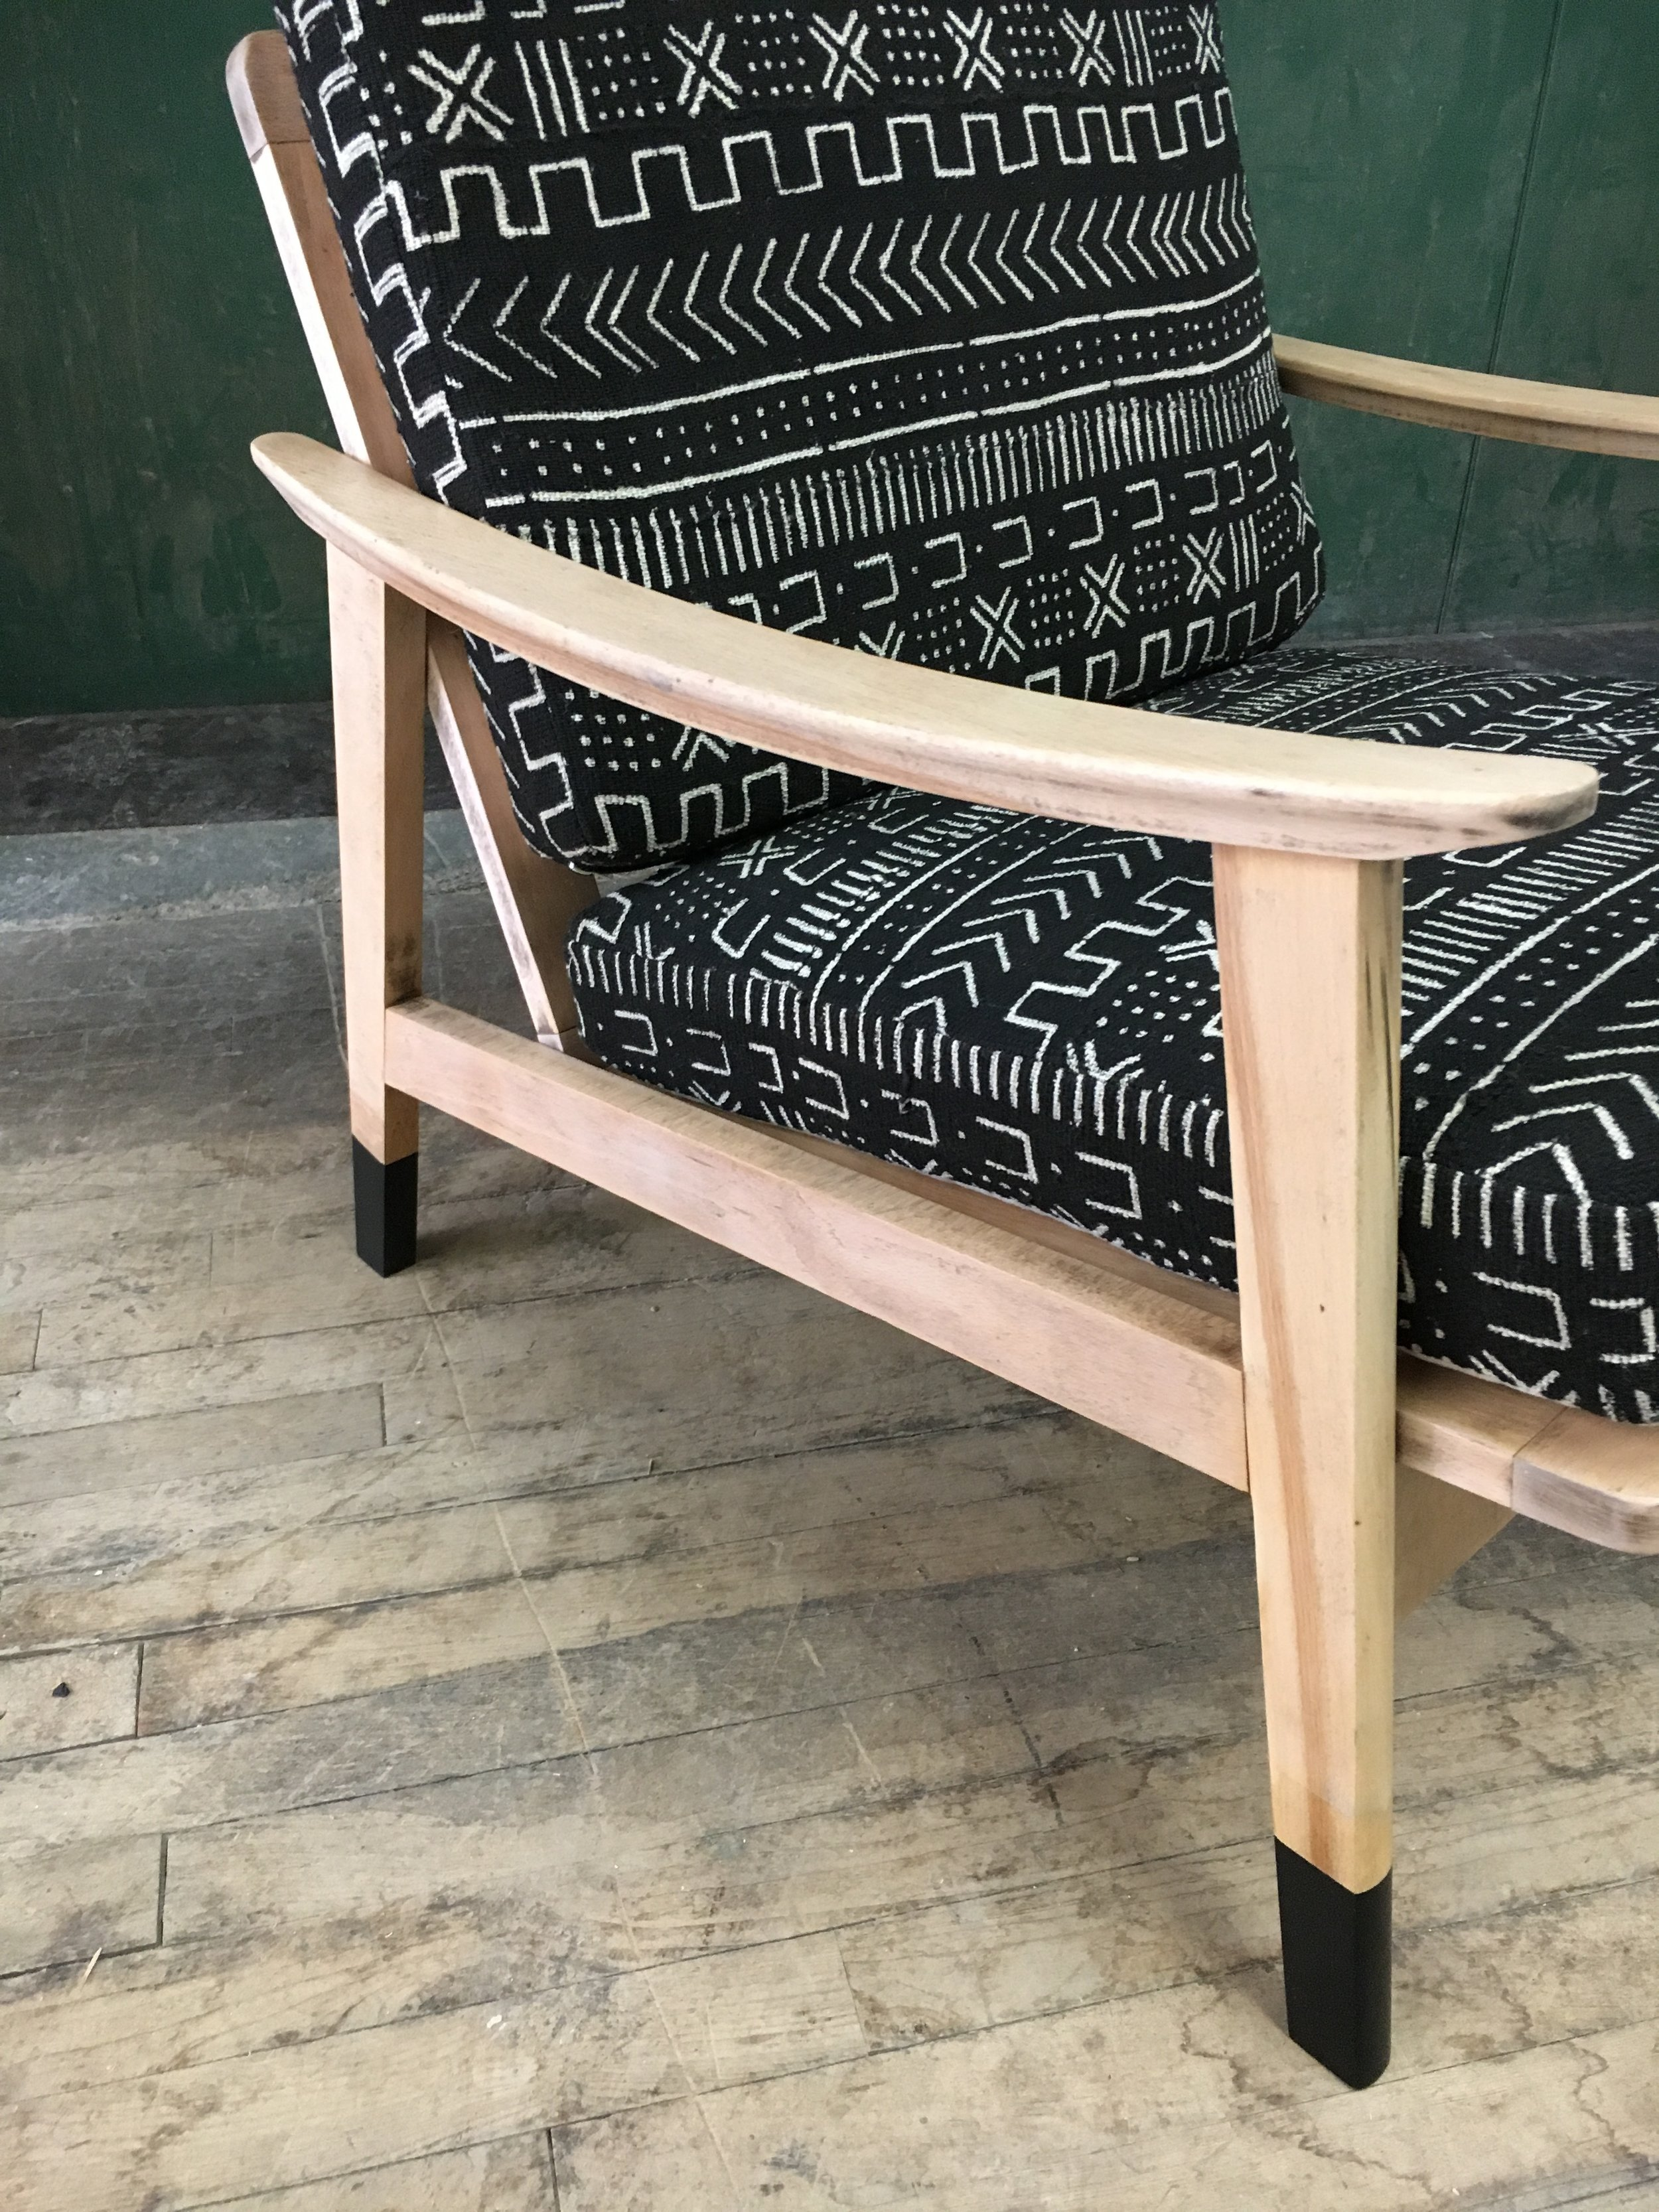 Solid wood midcentury modern lounge chair with painted black feet